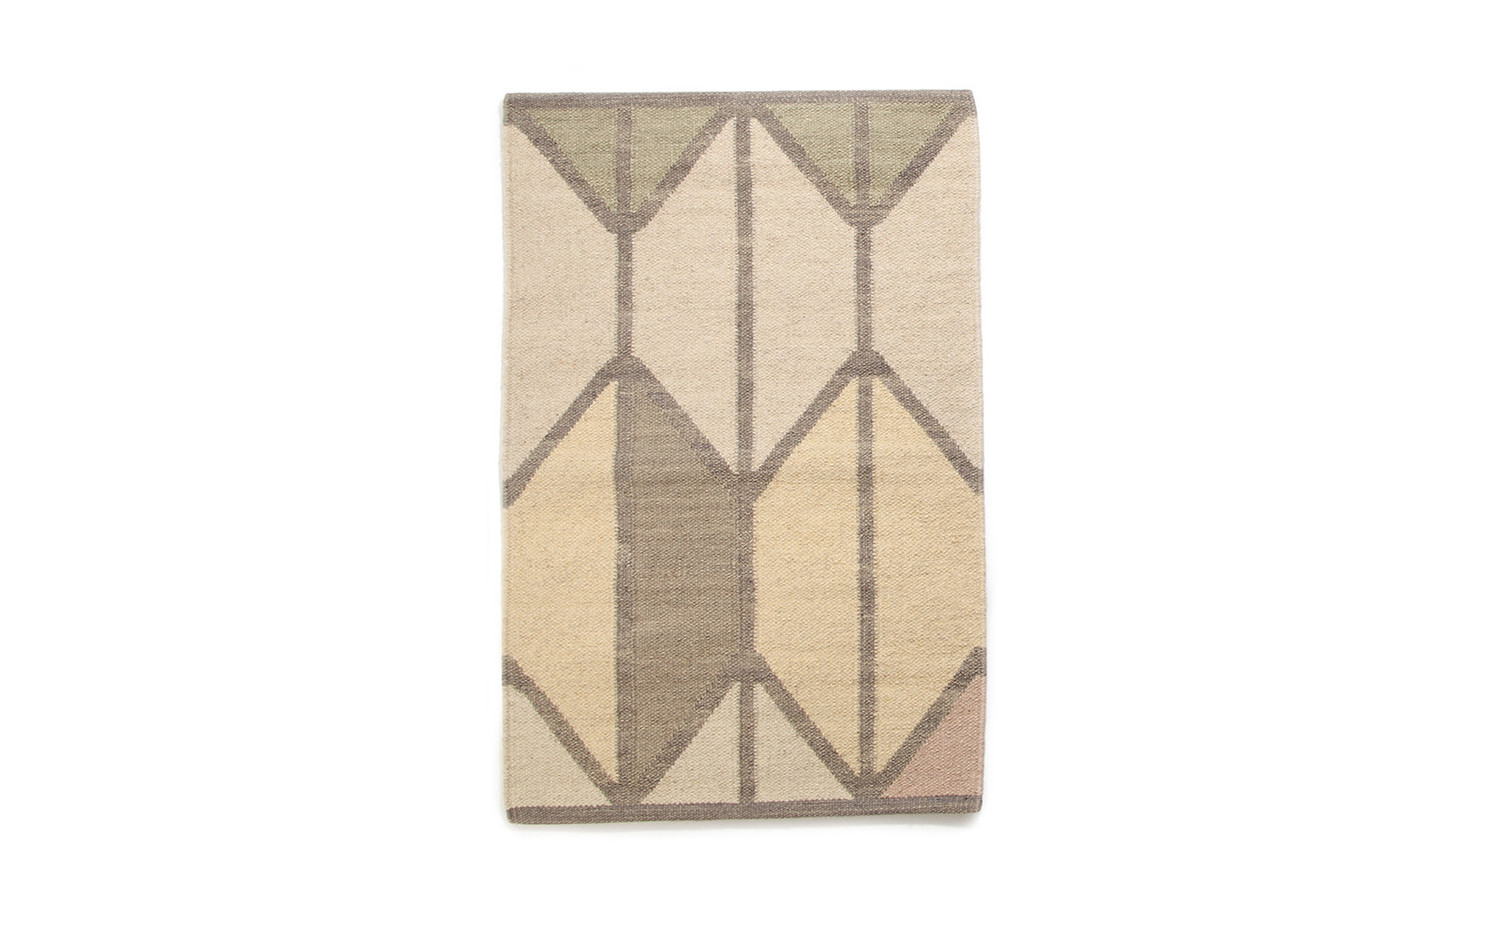 Alyson fox shapes rug 1